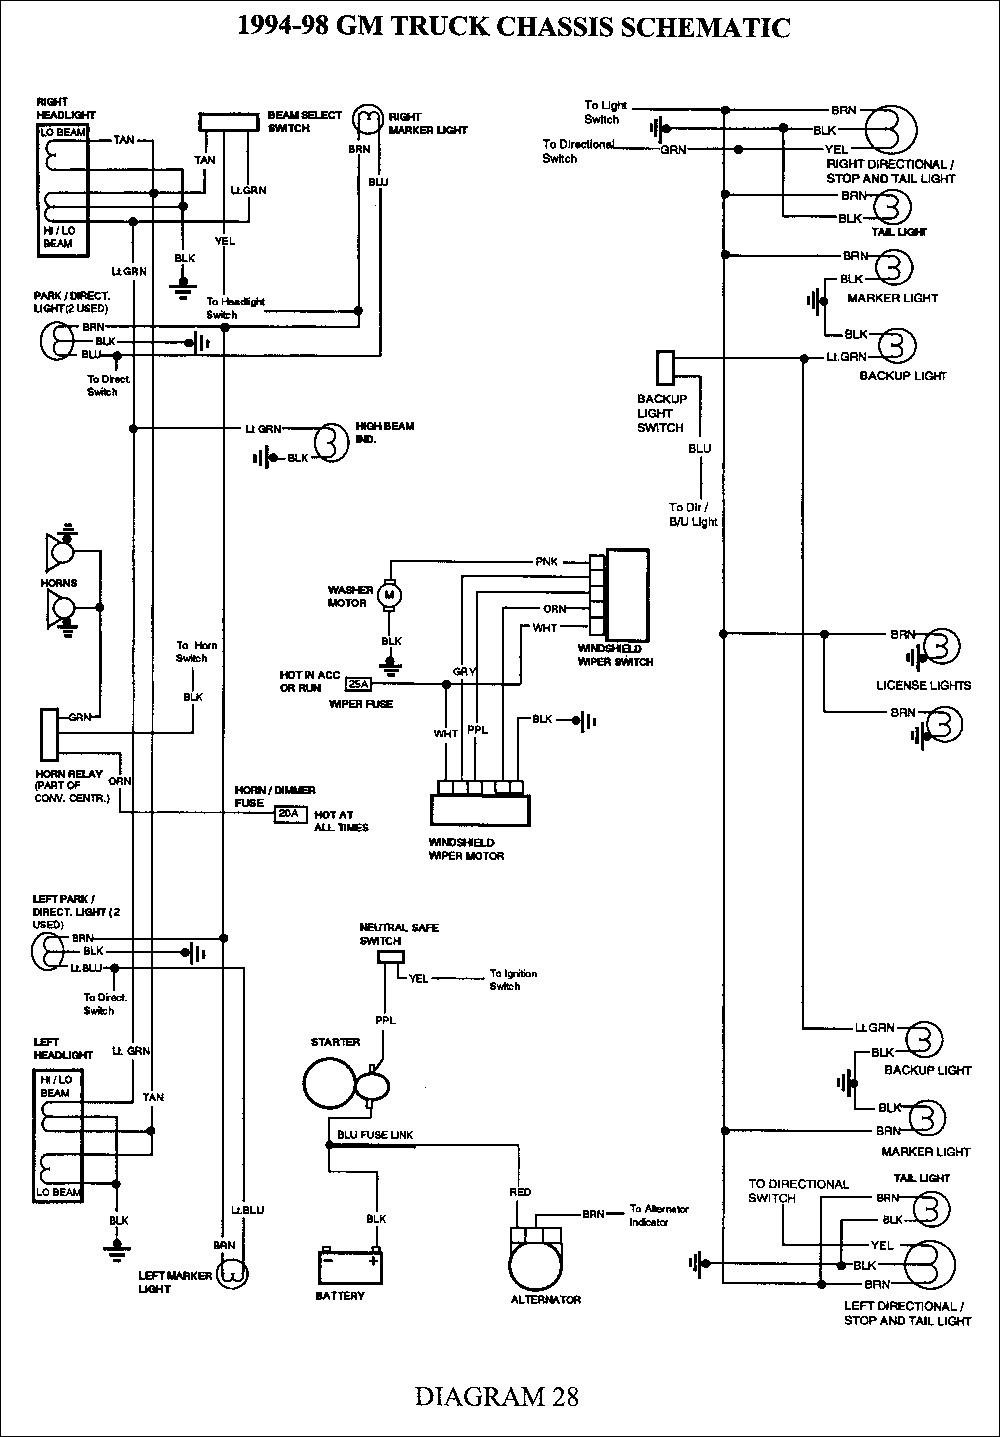 98 Gmc Jimmy Wiring Diagram - Solution Of Your Wiring Diagram Guide Wiring Diagram Ford F Put on 2007 ford f-250 wiring diagram, 1989 ford f-250 wiring diagram, 2002 acura mdx wiring diagram, 1990 ford f-150 fuel pump wiring diagram, 1997 ford f-250 wiring diagram, 1993 ford f-250 wiring diagram, 2003 ford excursion wiring diagram, ford f 450 wiring diagram, 2003 ford f-250 wiring diagram, 1996 ford f-250 wiring diagram, 2006 ford f-250 wiring diagram, 1985 ford f-250 wiring diagram, 2002 toyota highlander wiring diagram, 1990 ford f-250 wiring diagram, 2008 ford f-250 wiring diagram, 2002 cadillac escalade wiring diagram, 2002 chevy express wiring diagram, 1997 ford crown victoria wiring diagram, 1988 ford f-250 wiring diagram, 1999 ford f-250 wiring diagram,